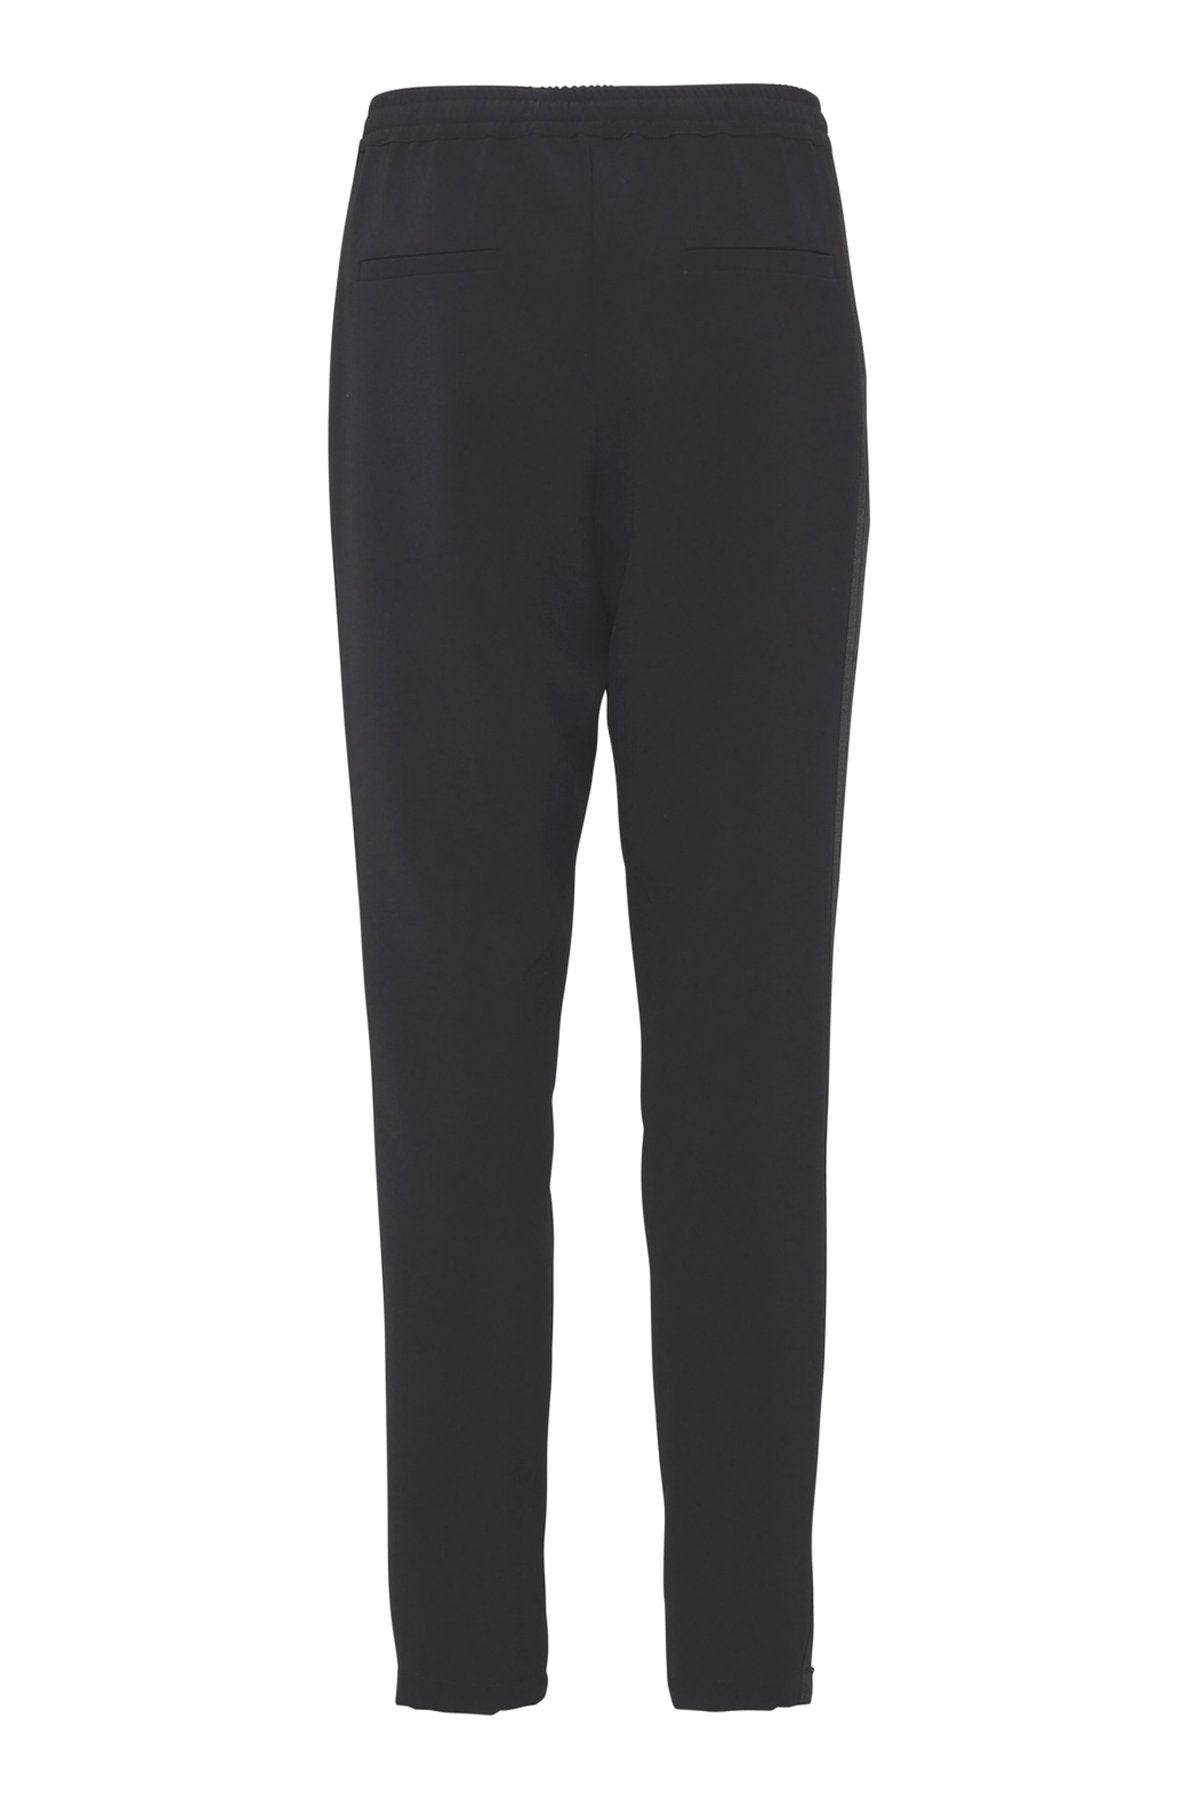 Mercer Pants - Black